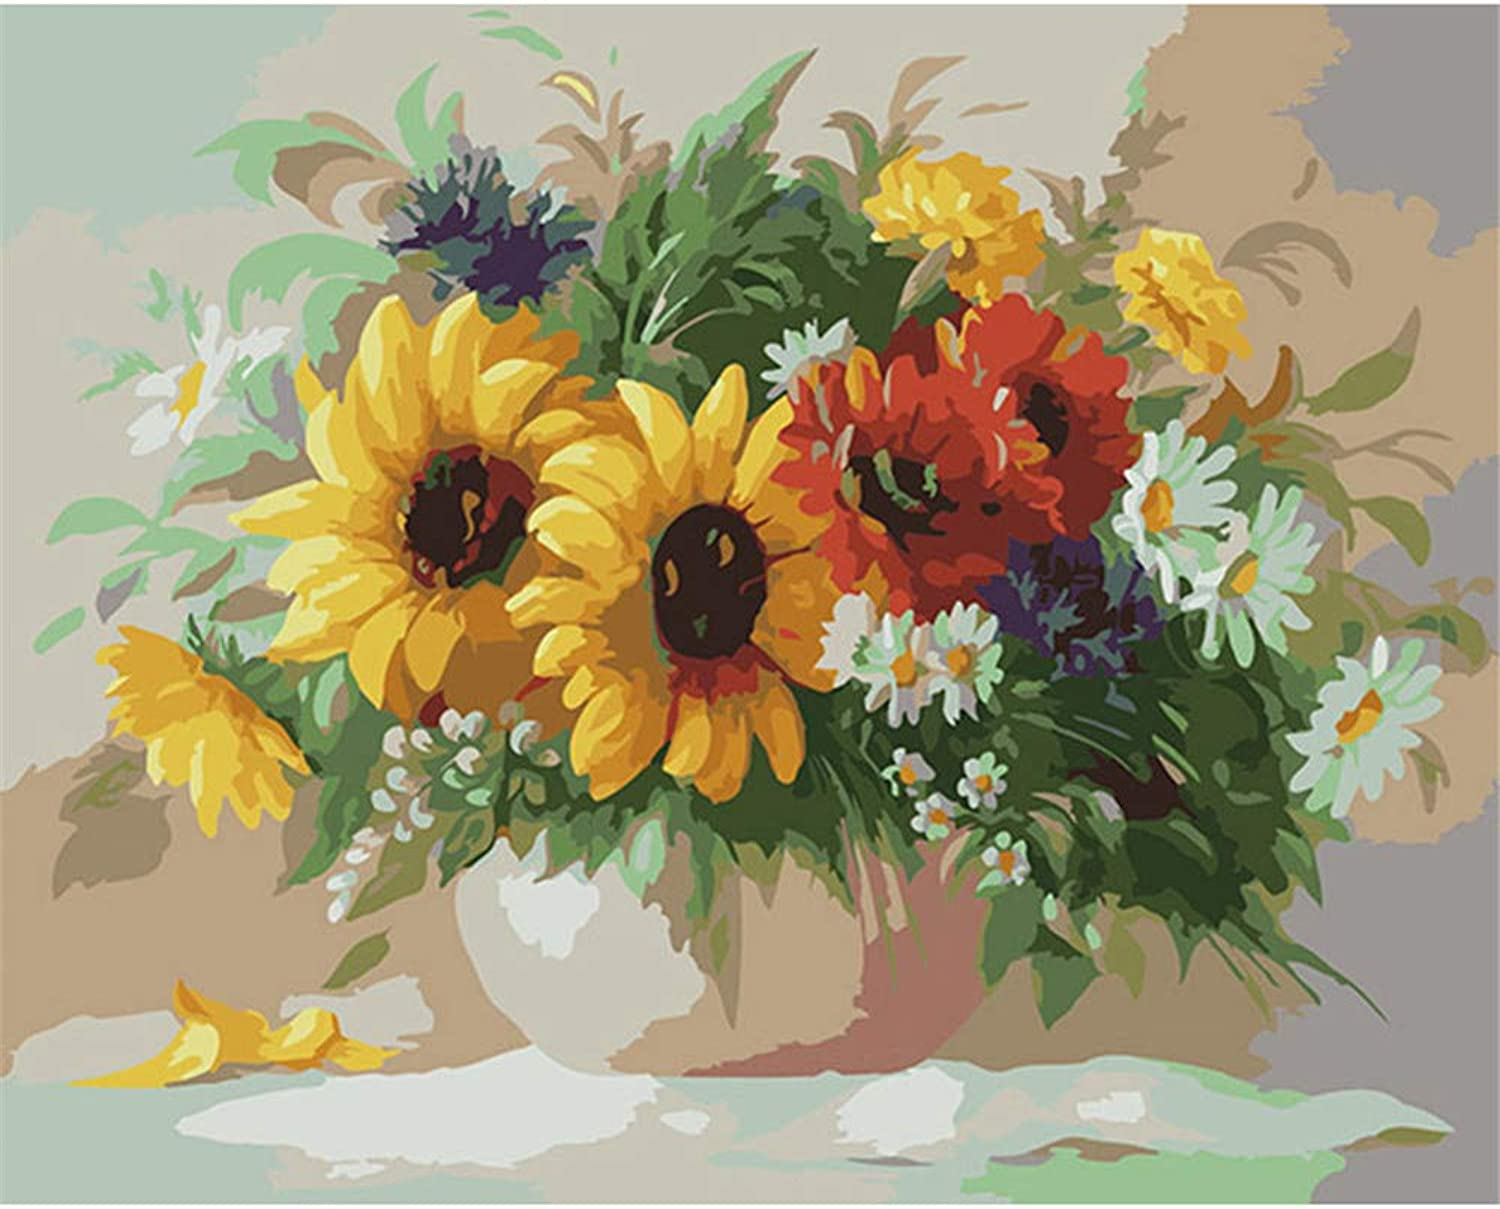 Jigsaw Puzzle 1000 Piece Yellow Daisy Classic Puzzle DIY Kit Wooden Toy Unique Gift Home Decor